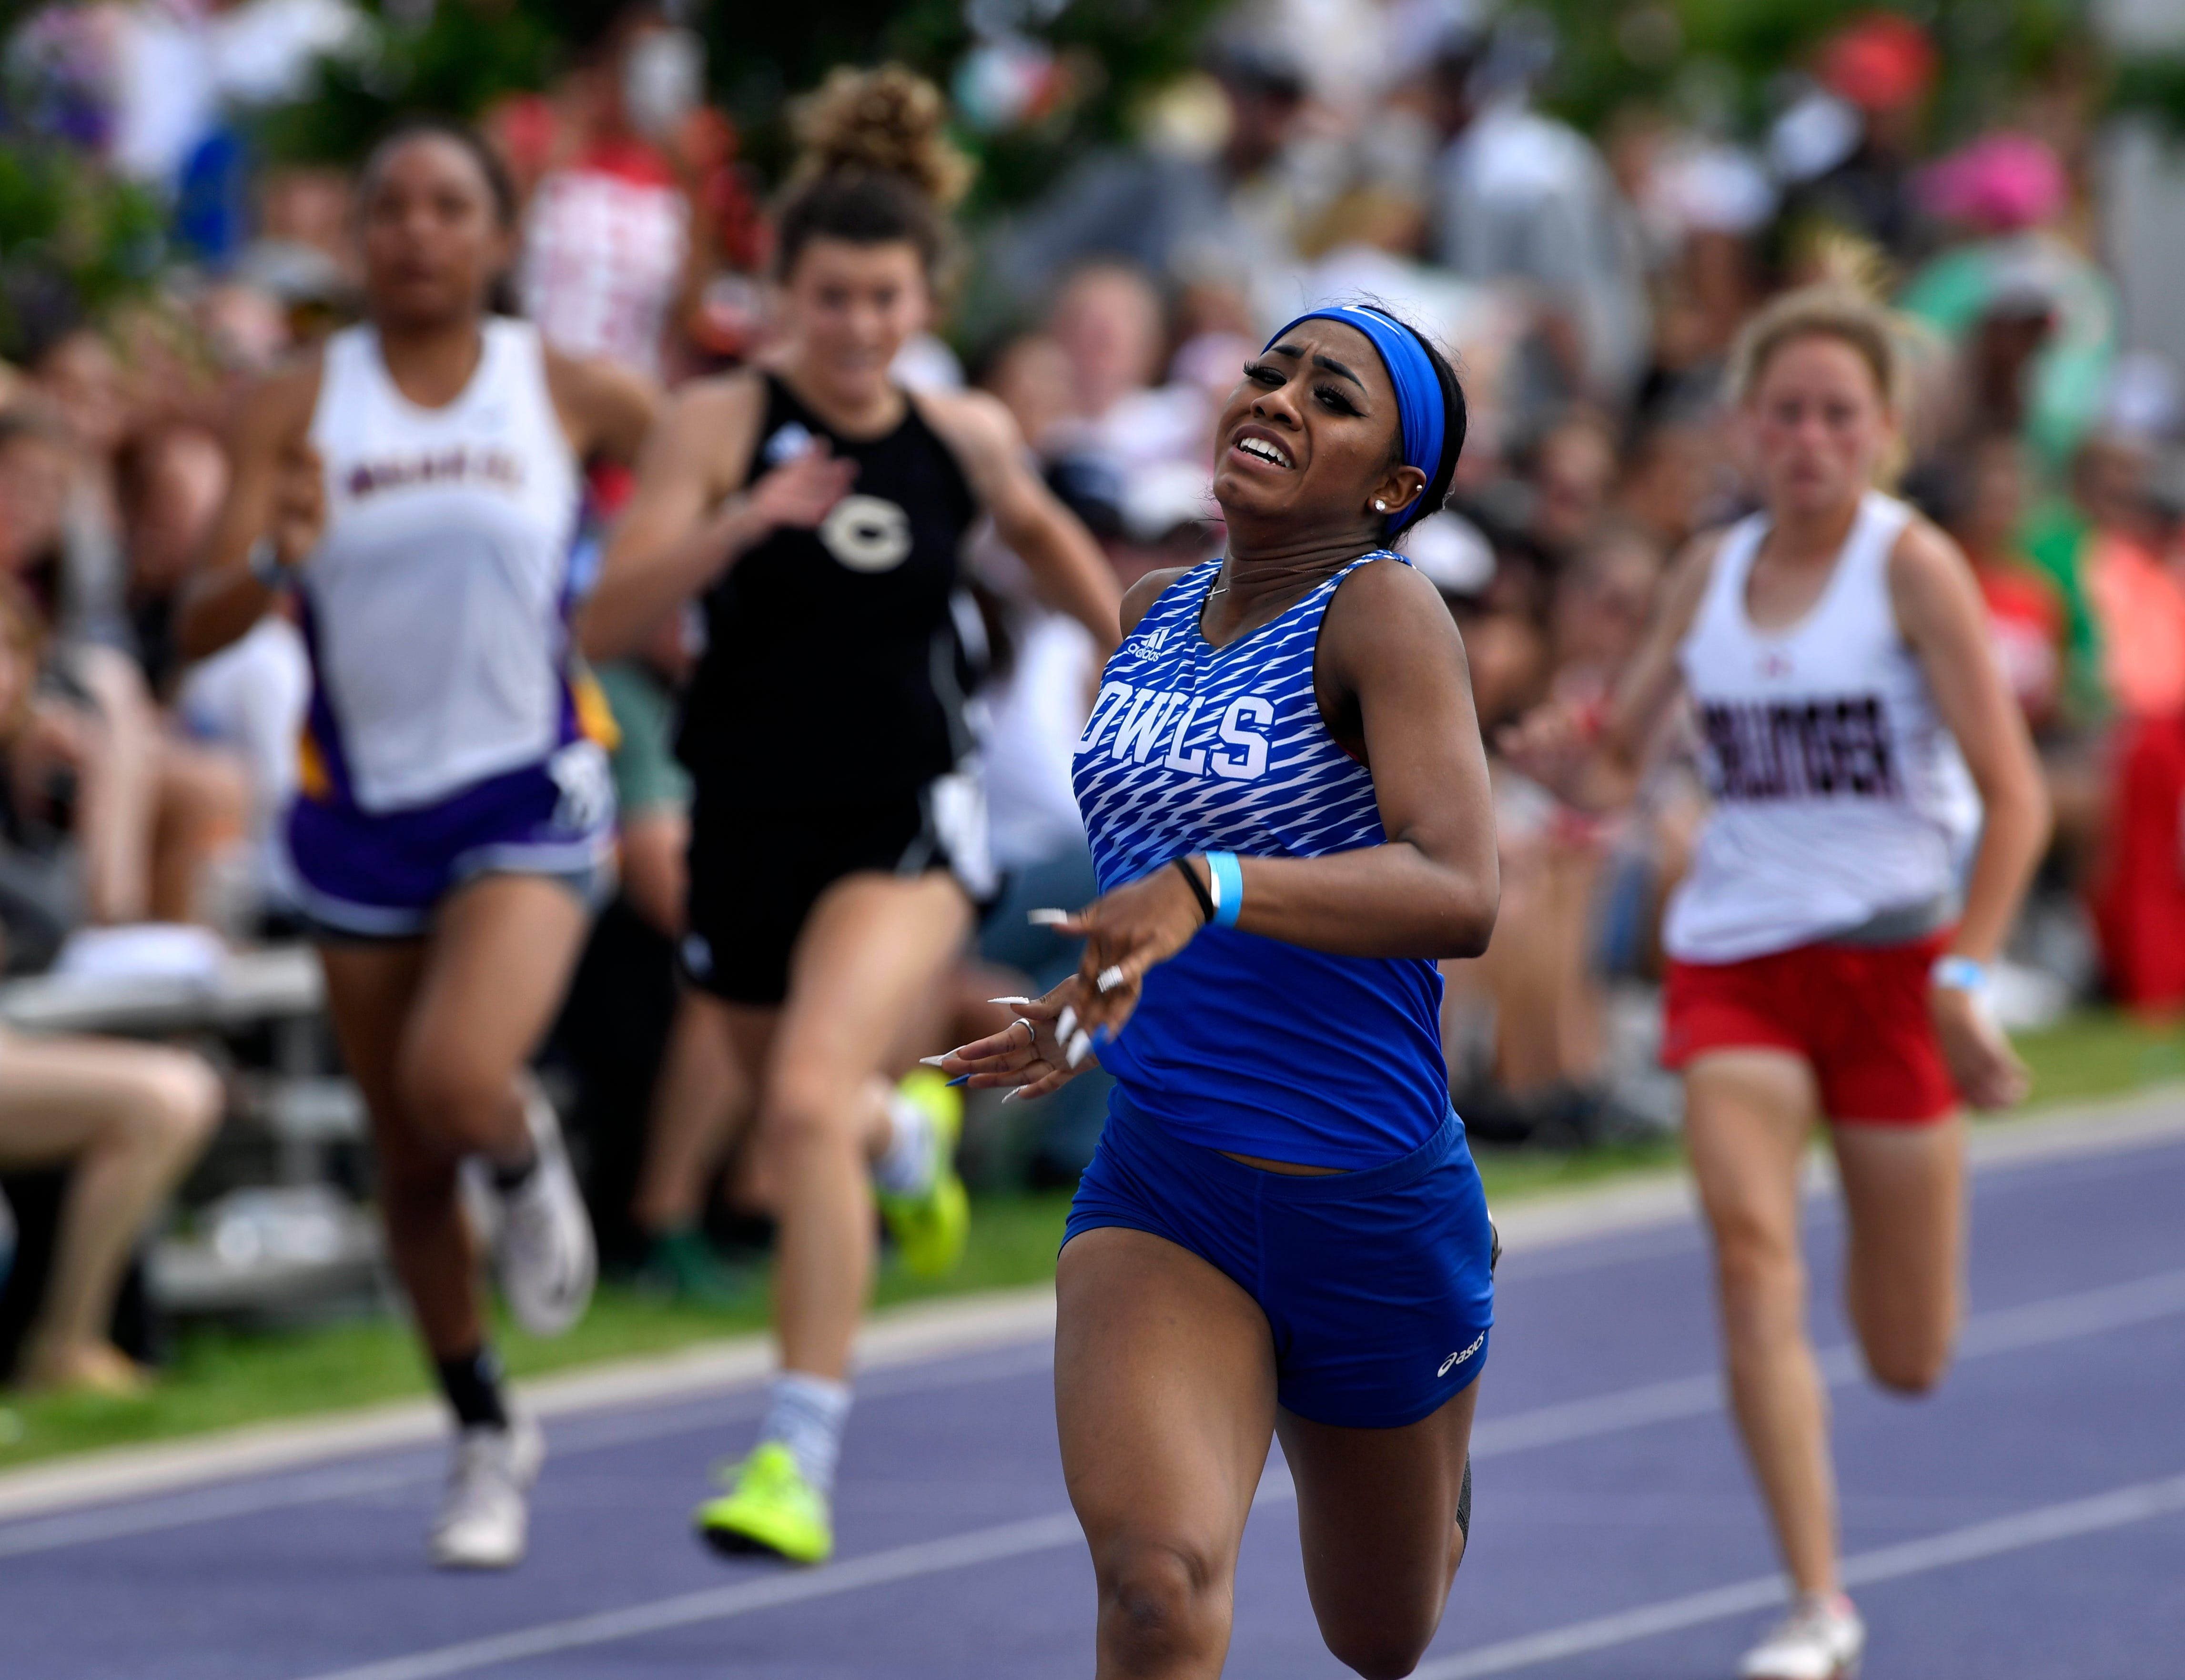 Jayslynn Reyes of Reagan County wins her prelims heat in the girls 200-meter dash during Saturday's Region 1-3A track meet at Abilene Christian University April 27, 2019. Reyes ended up second in the finals but both she and Littlefield's D'Anna Smith broke a regional record from 1984.